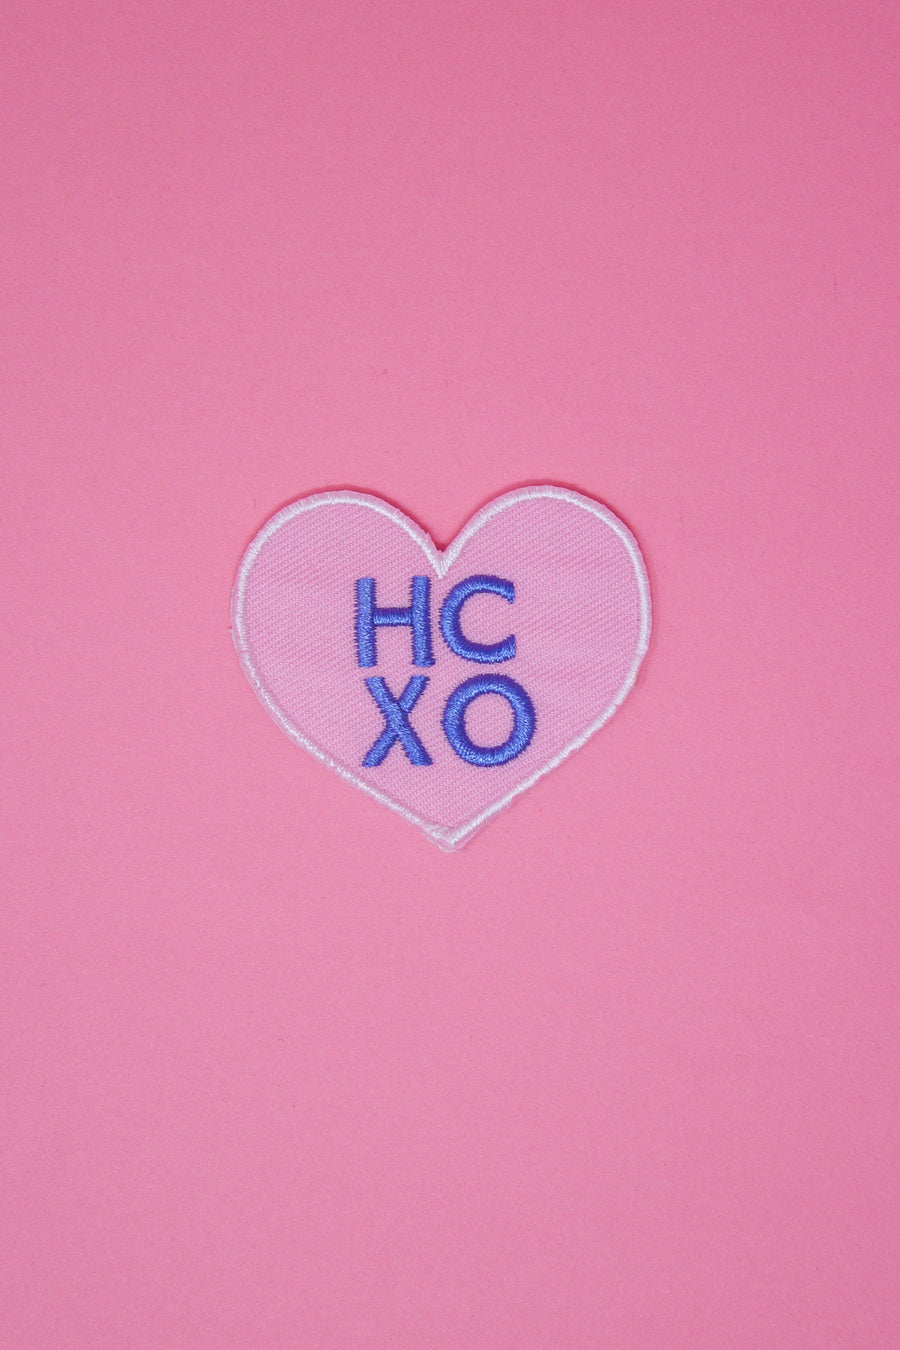 HCXO Patch